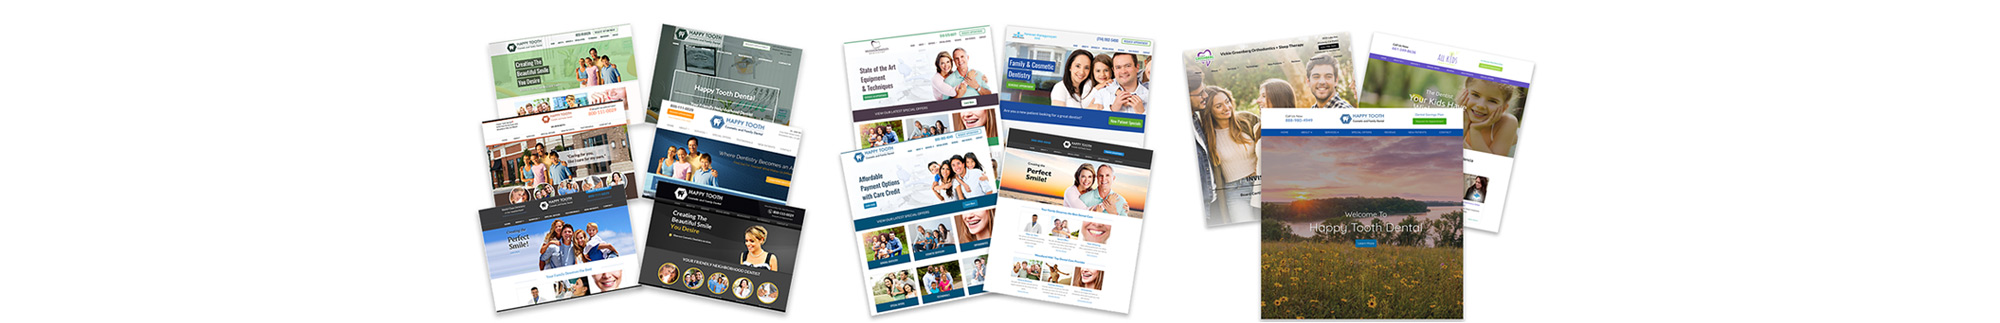 dental and medical web services